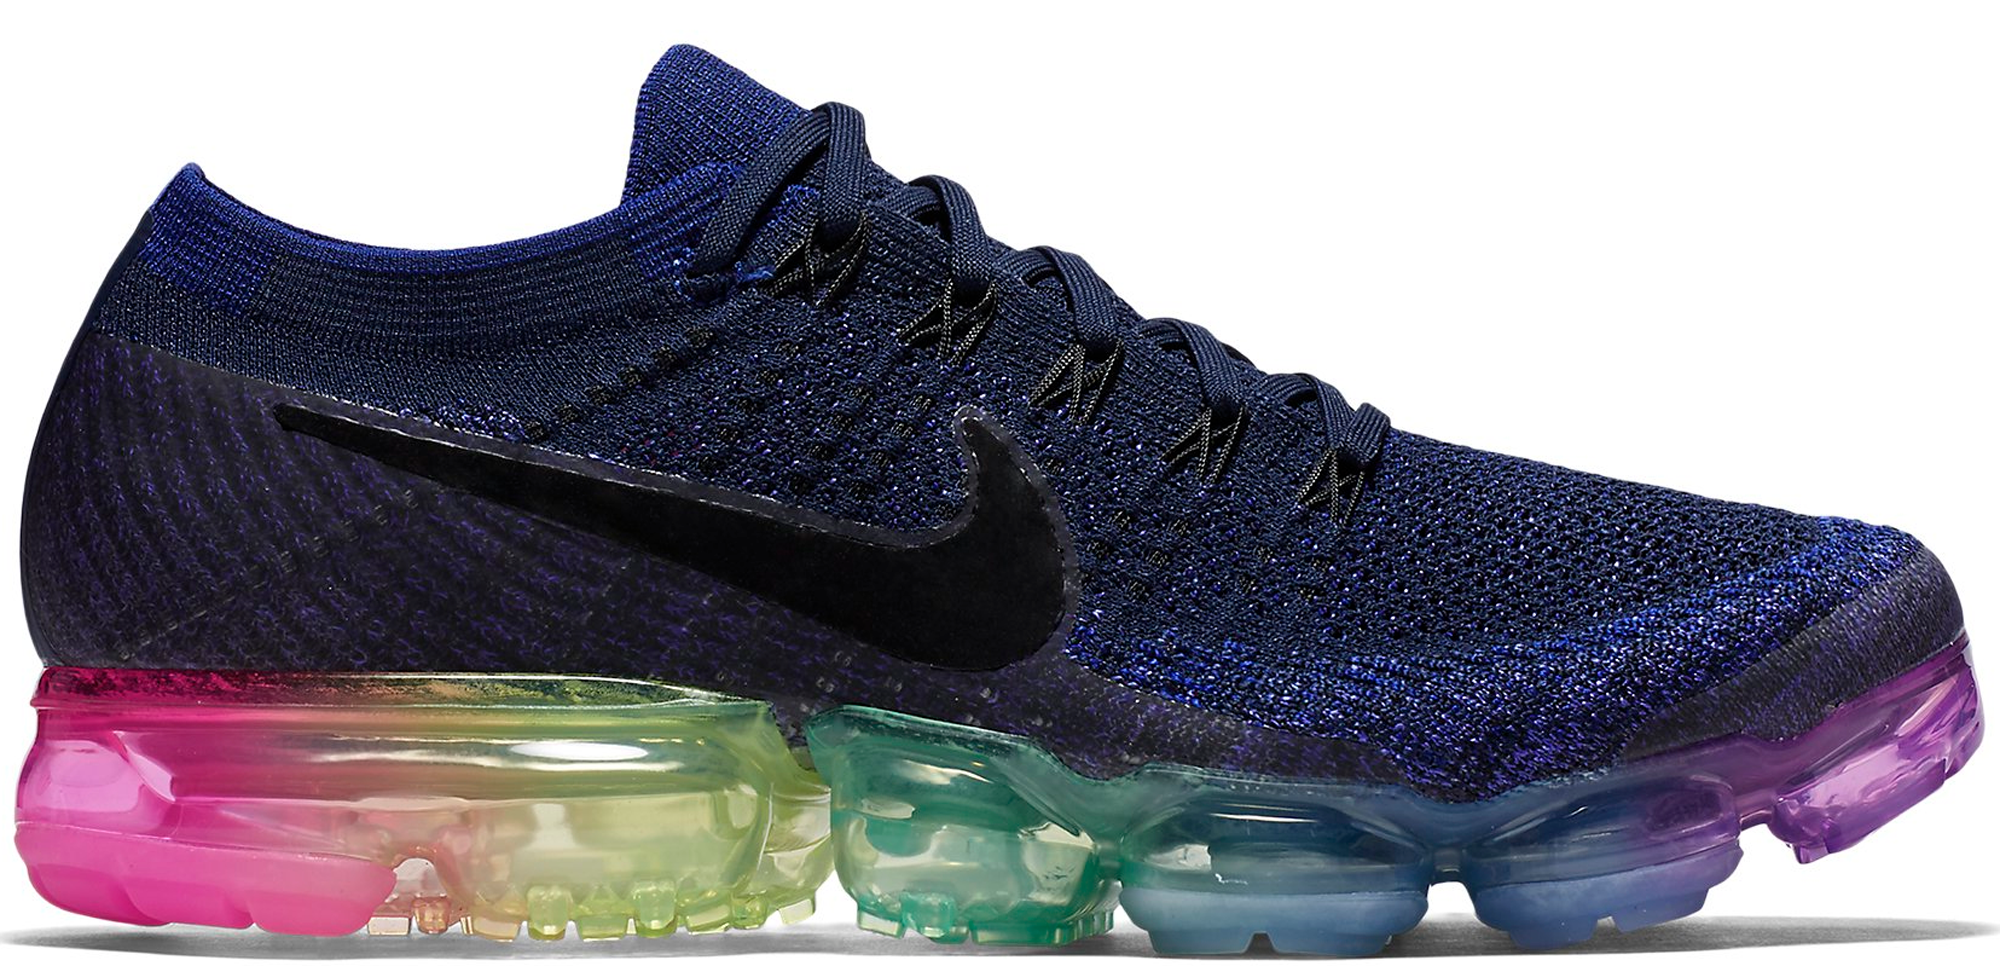 ee75fa2ab4473 Nike Air VaporMax Be True 2017 LGBTQ · Nike Air VaporMax. Colorway  Deep  Royal Blue Concord-White-Pink Blast Style  883275-400